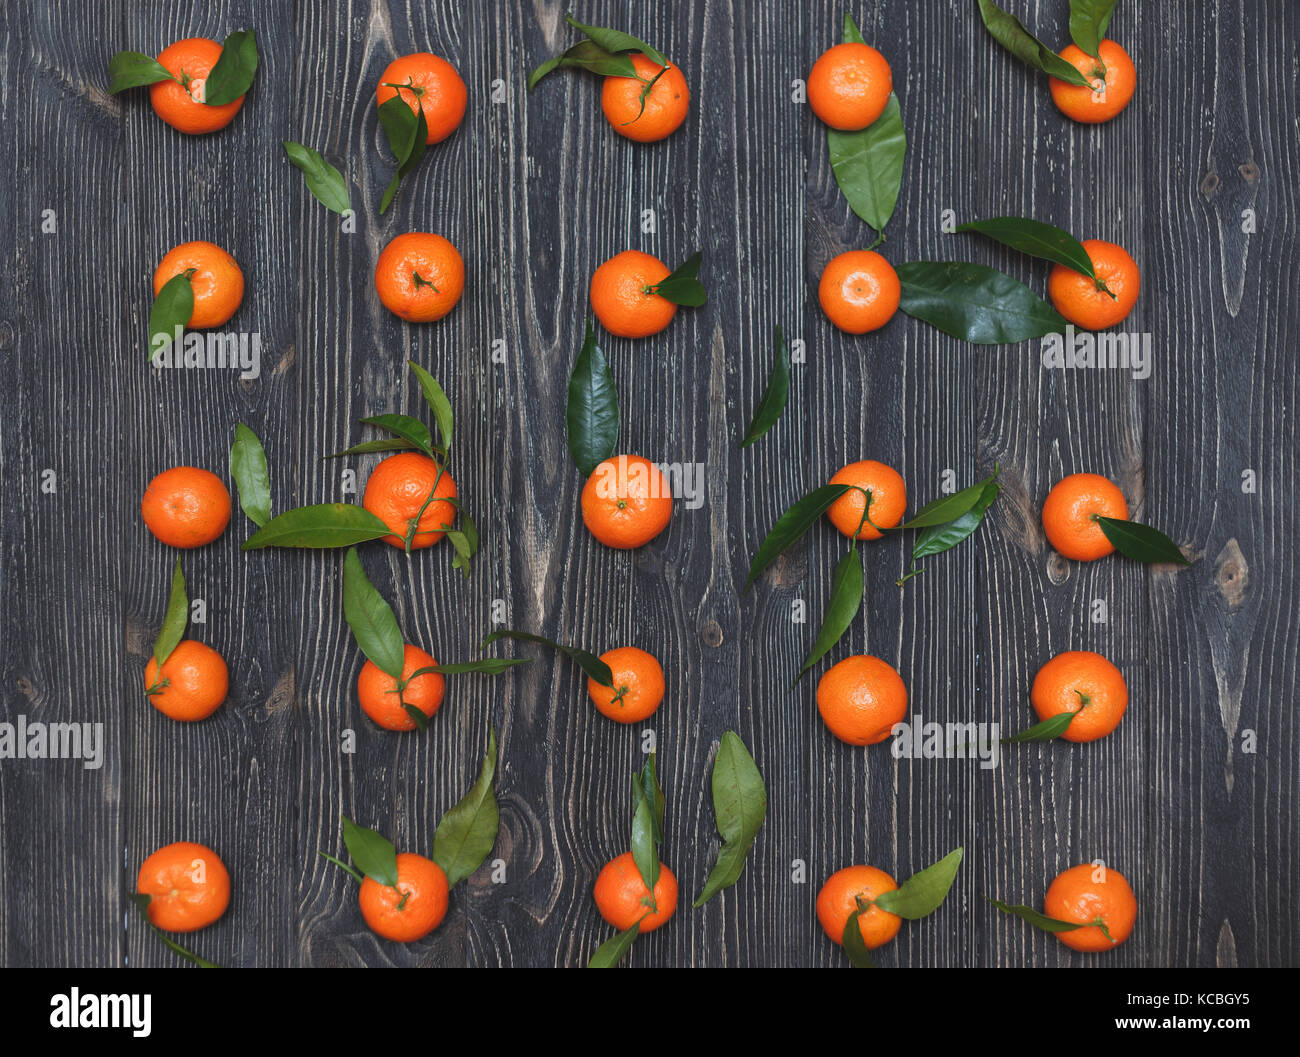 The new crop of tangerines lying in a row on dark wooden textural background Stock Photo